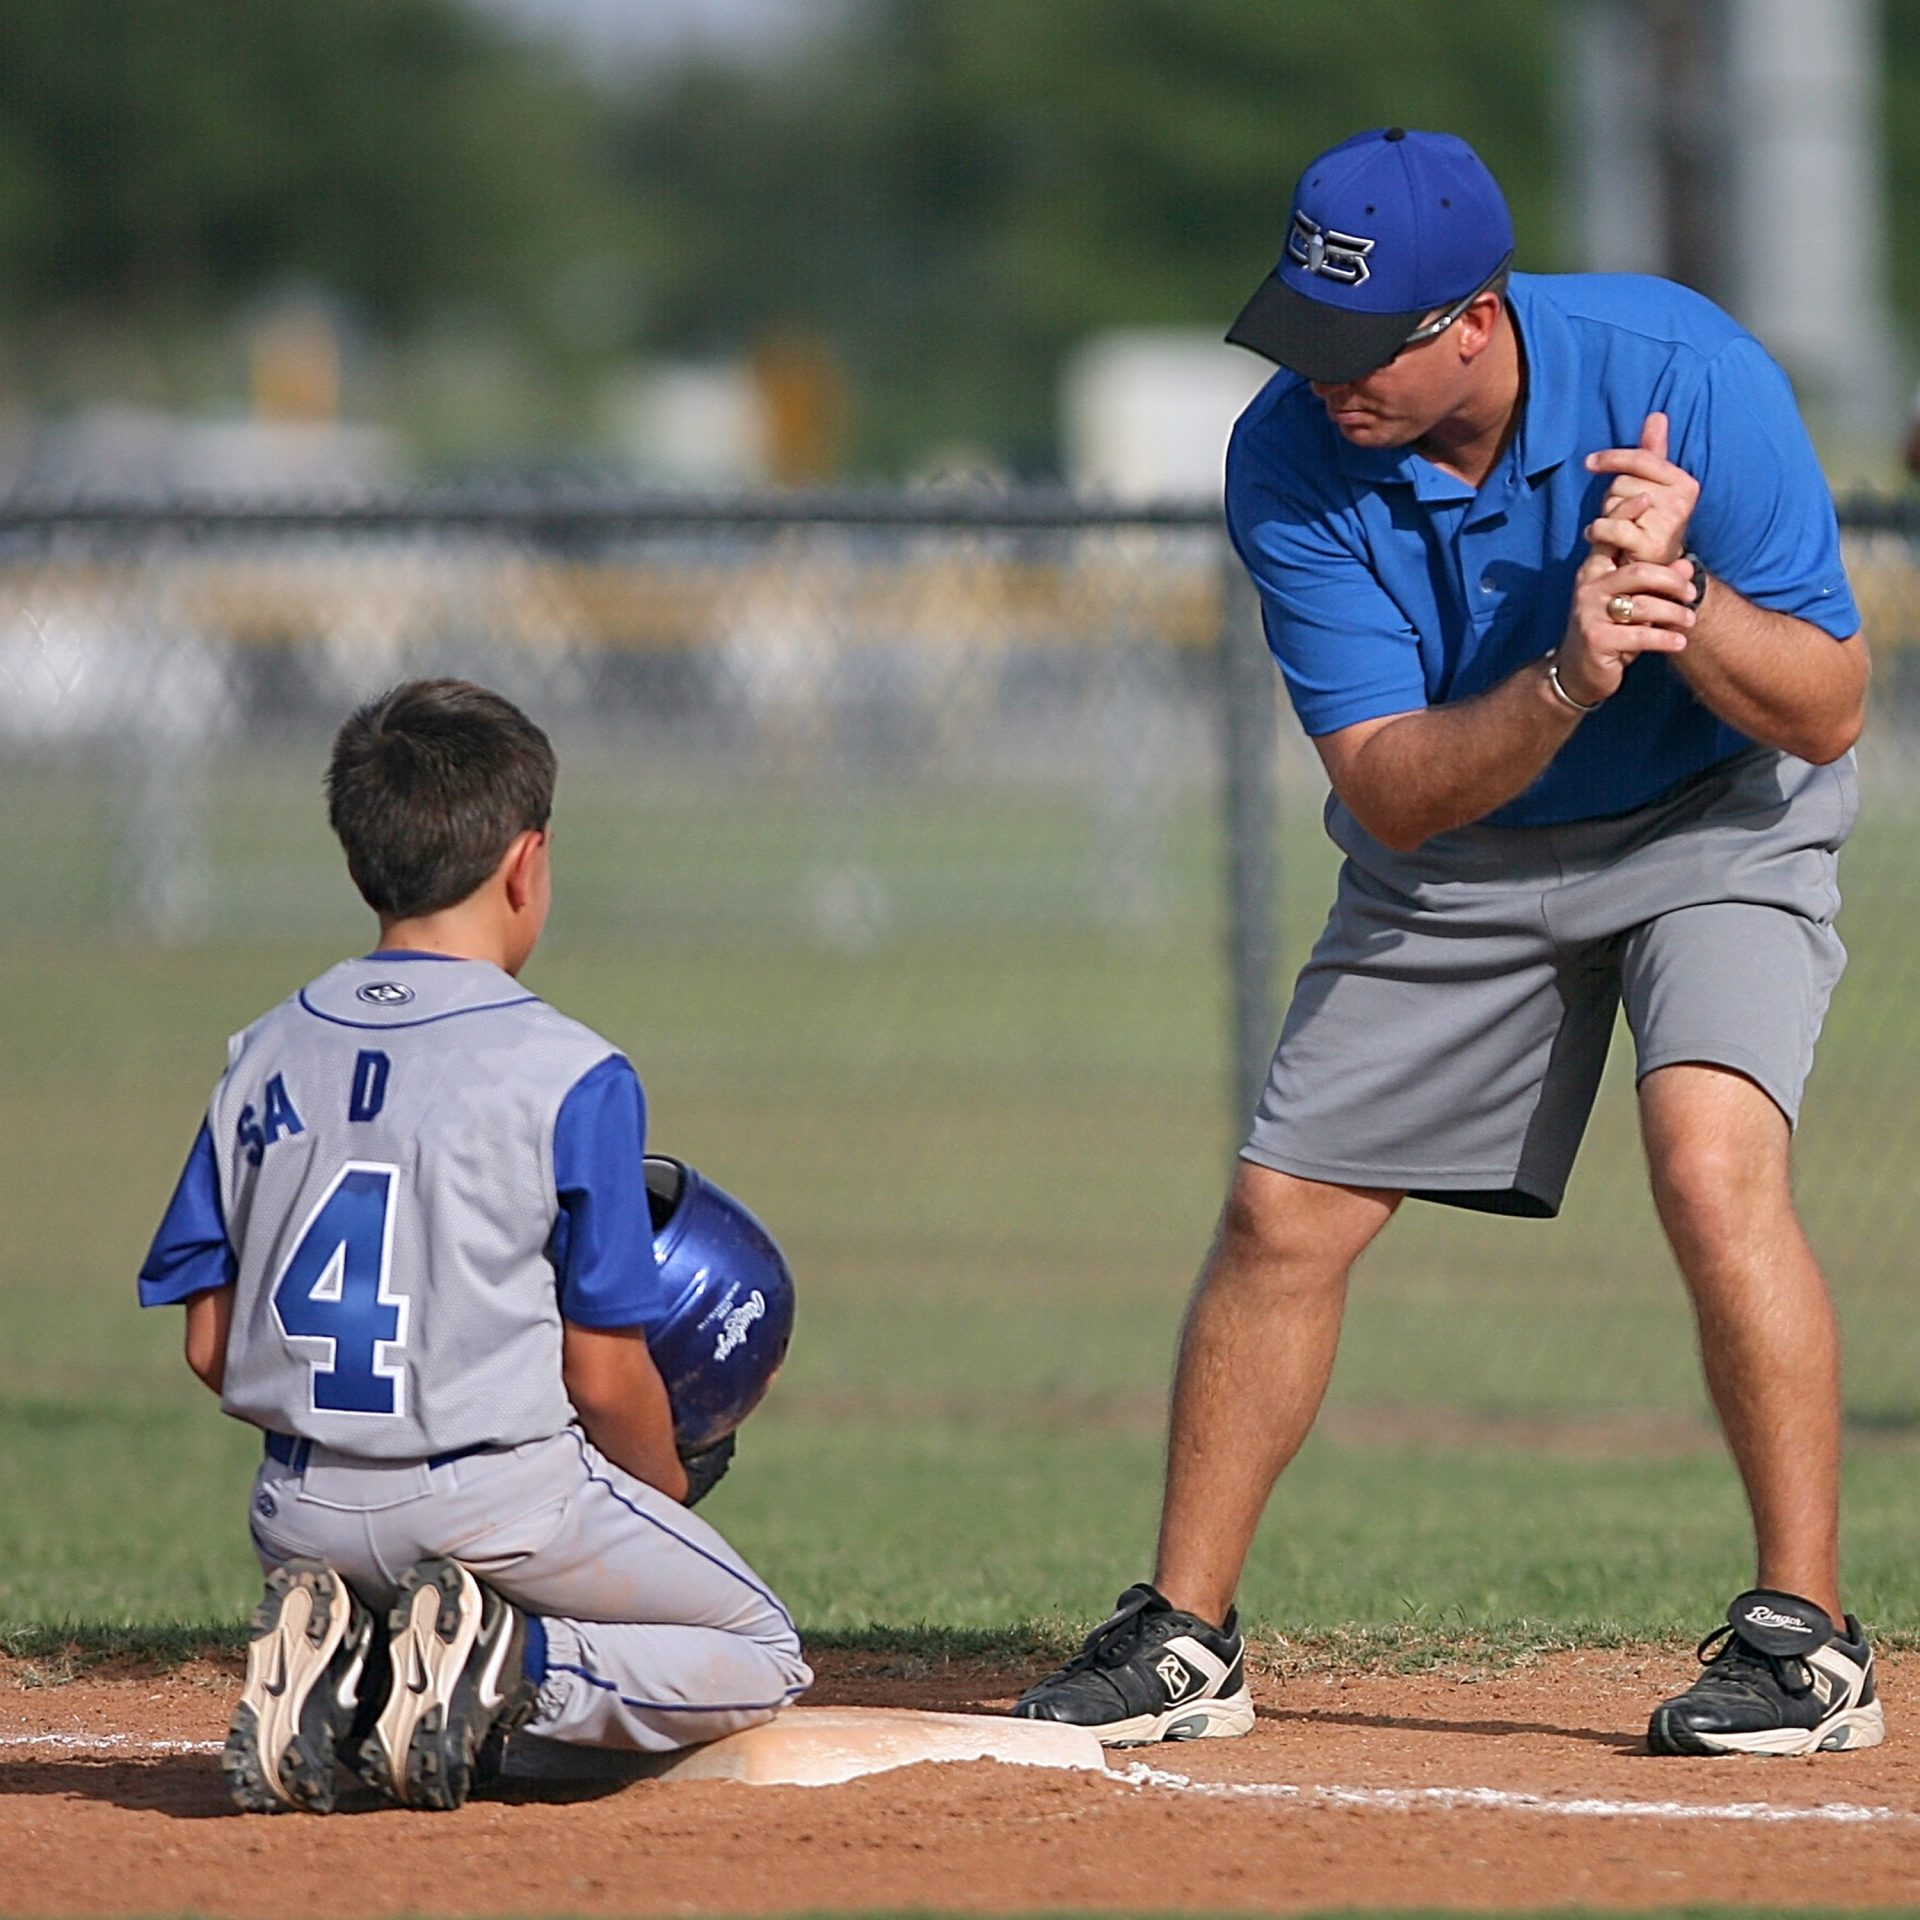 boy Kneeling on Baseball Field Beside Man